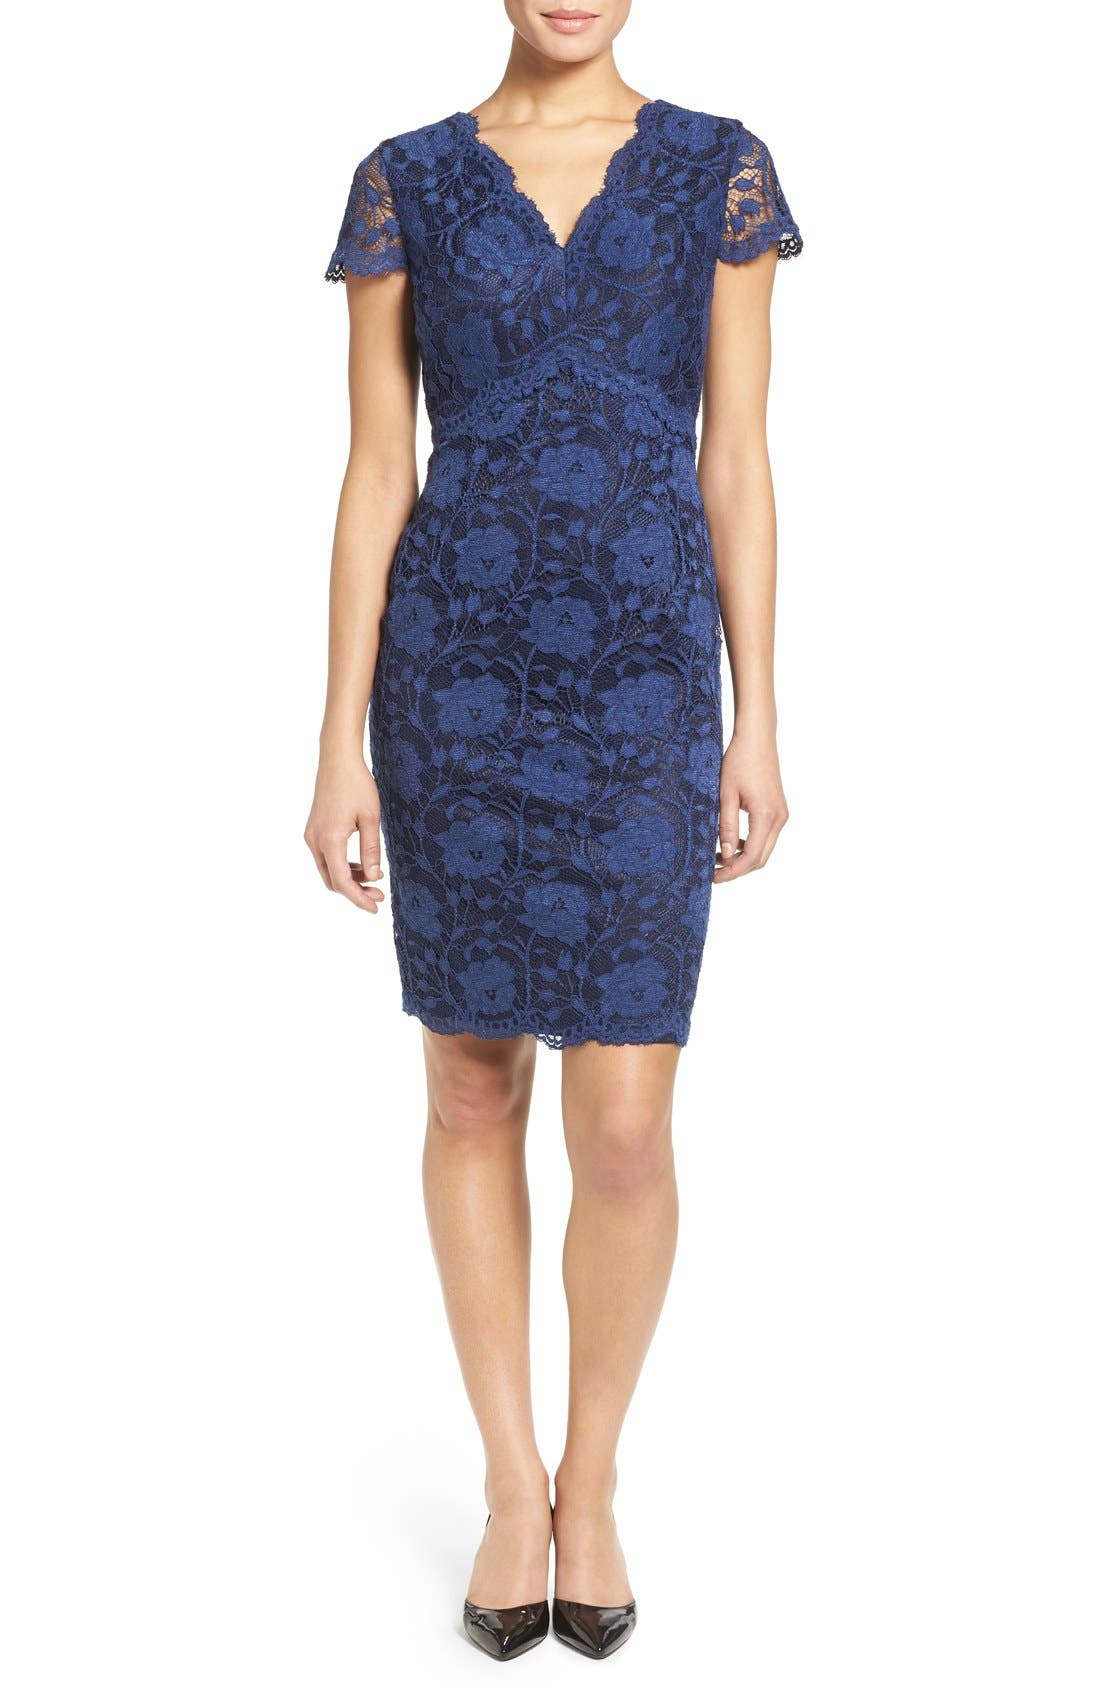 Ellen Tracy Lace Sheath Dress (Regular & Petite)